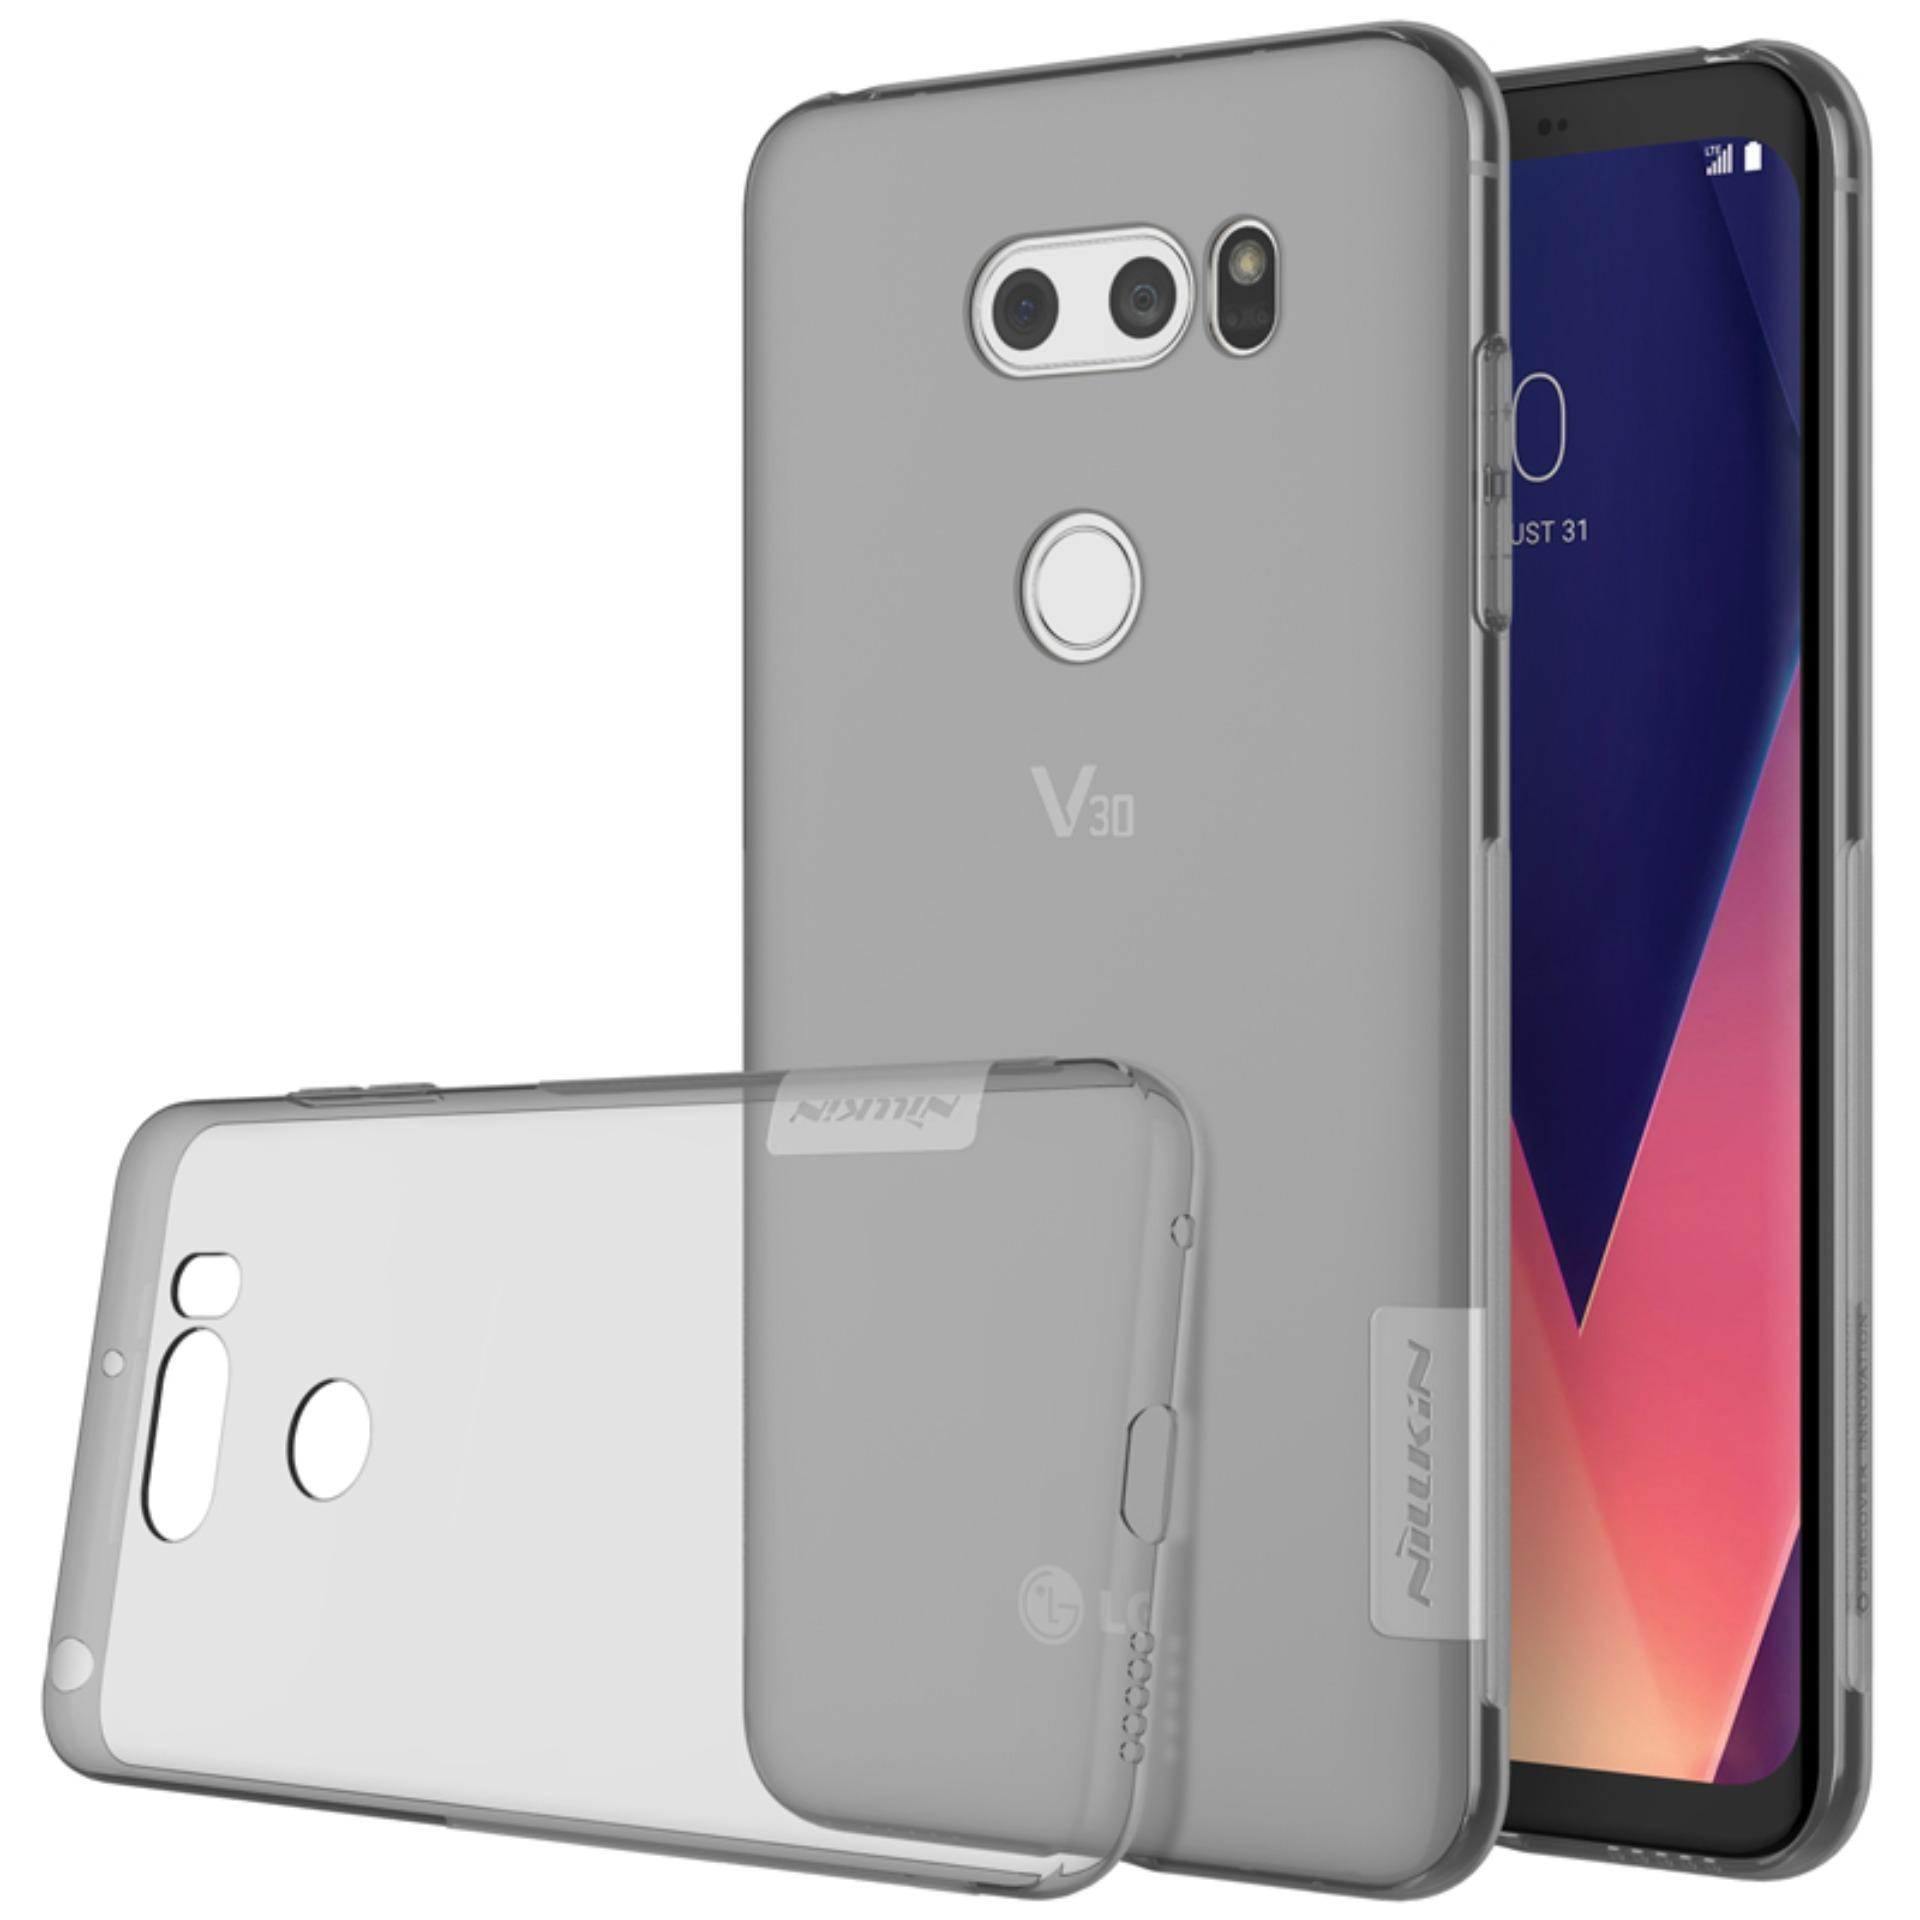 Harga Termurah Nillkin Nature Tpu Soft Case Lg V30 Grey